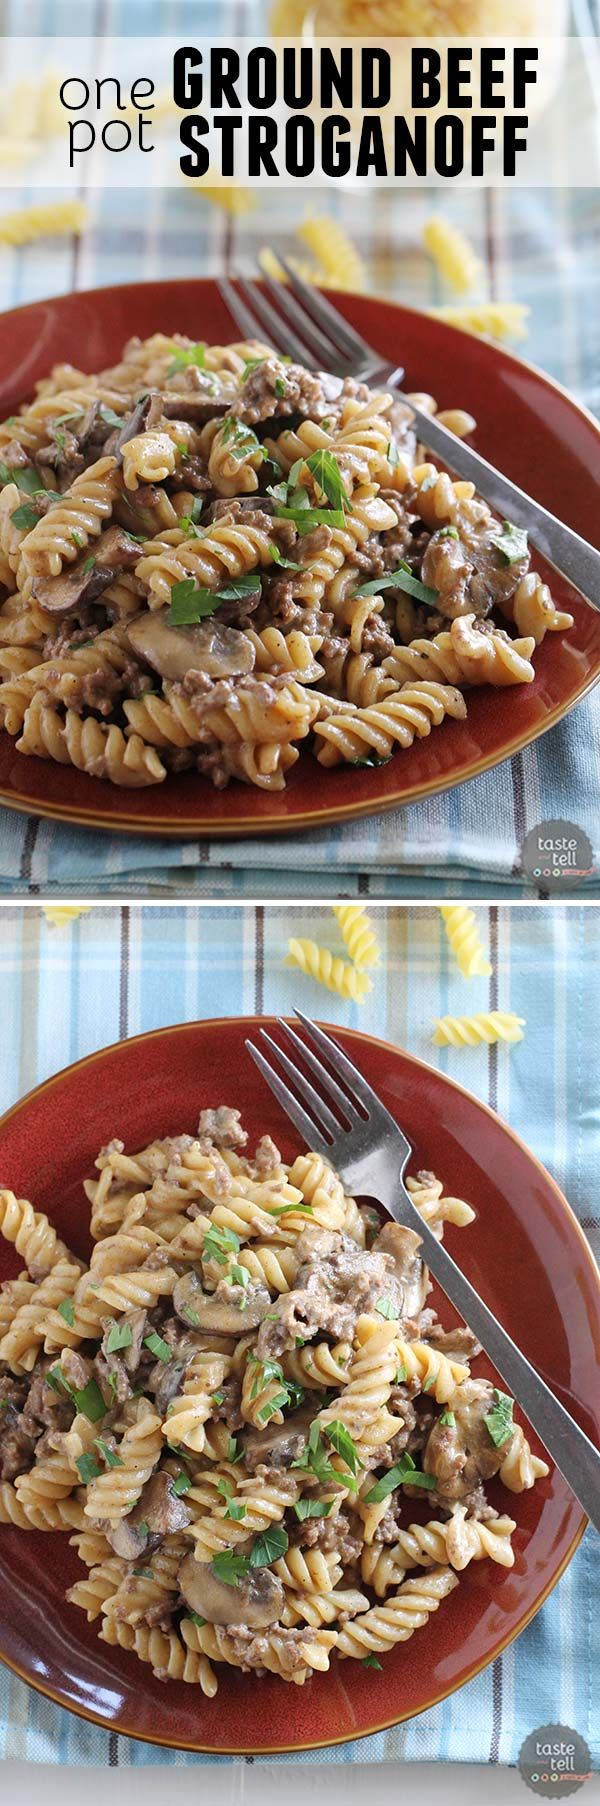 85 best images about recipes to try on pinterest black for Different meal ideas for ground beef